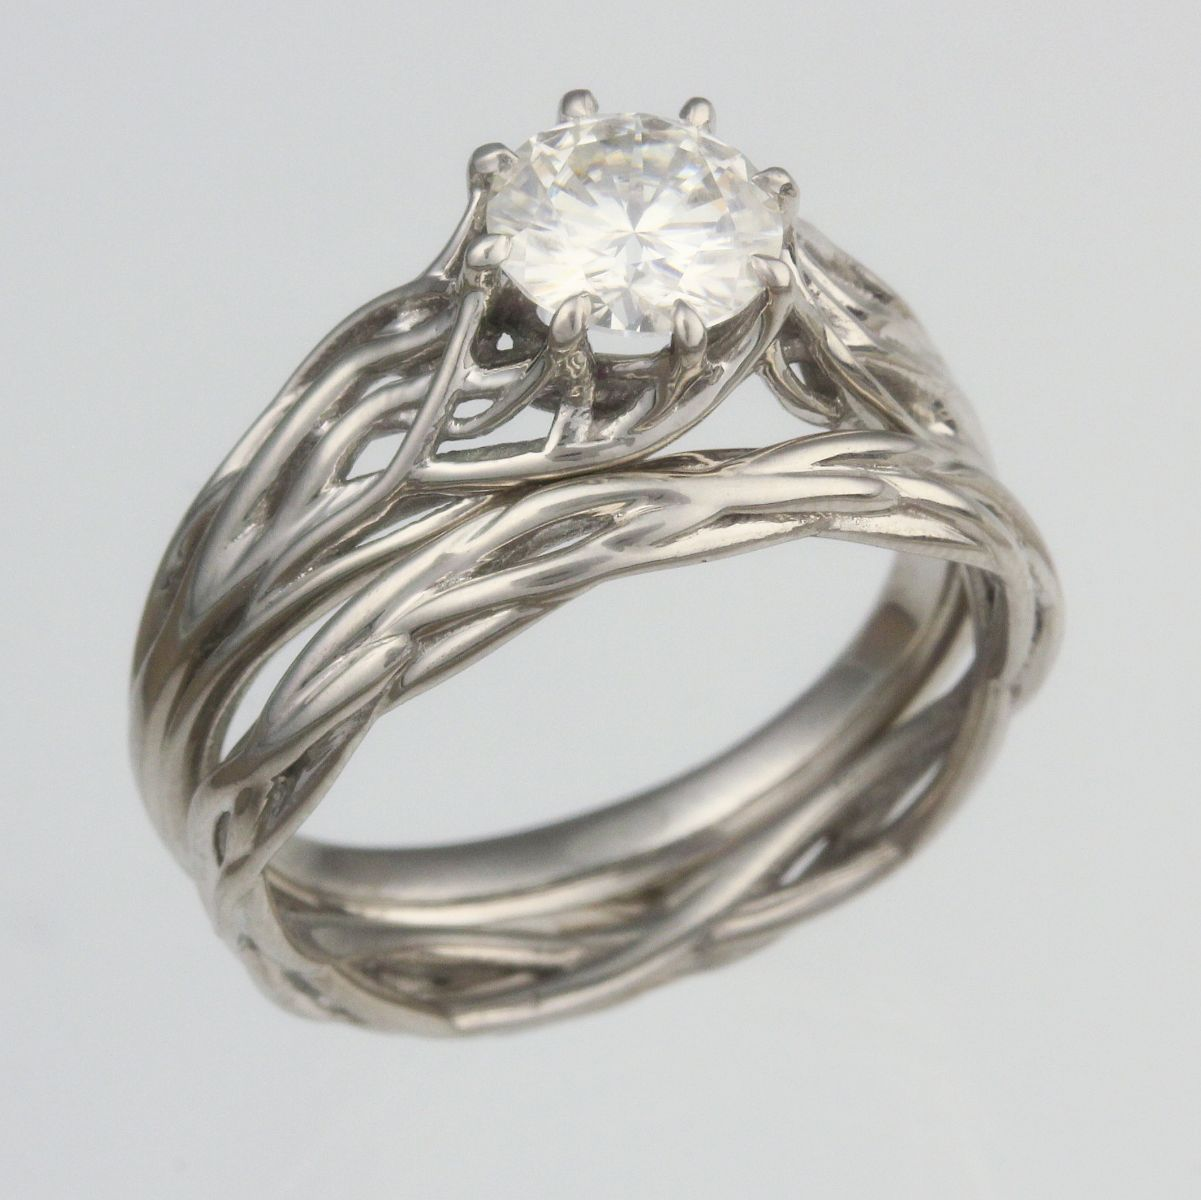 Gorgeous Engagement Rings From The Krikawa Collection, Colorized With Your  Choice Of Center Stone, Accent Stone, Metal Color And Mokume Type Enjoy!